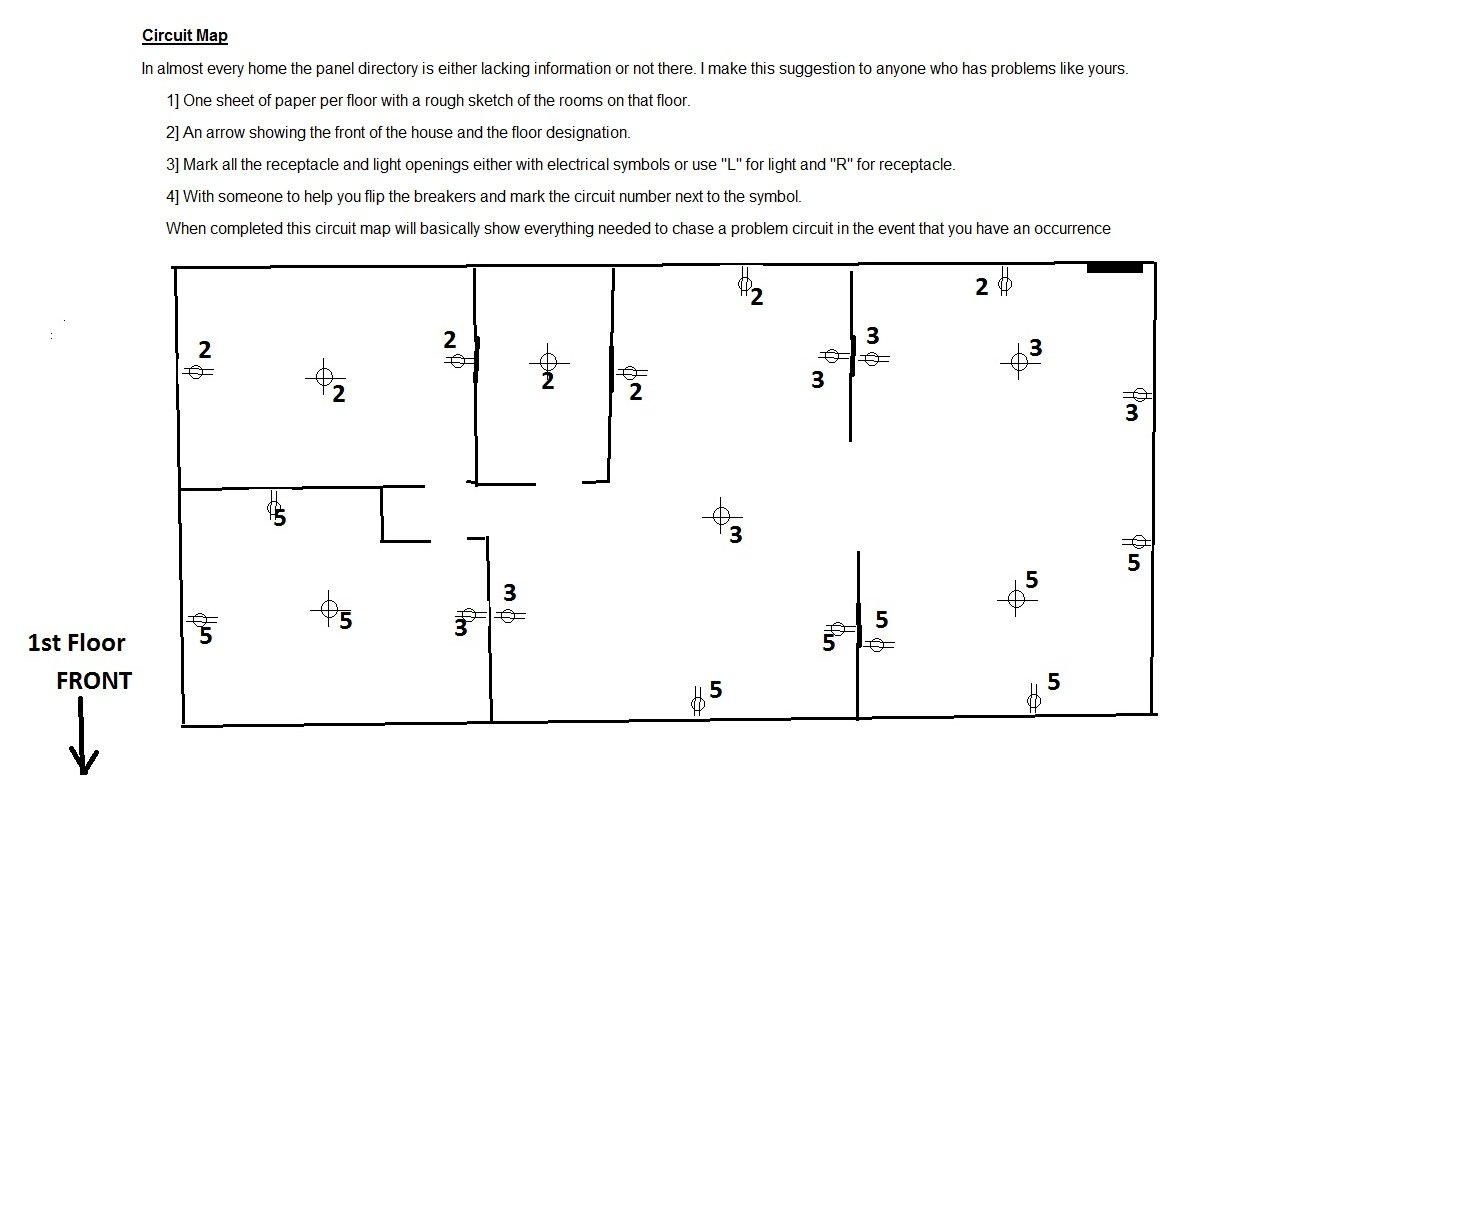 Afci Wiring Symbols Ask Answer Diagram Open Neutral I Have A House Constructed In 2007 The Lights And Outlets Are Out Rh Justanswer Com Tester Square D